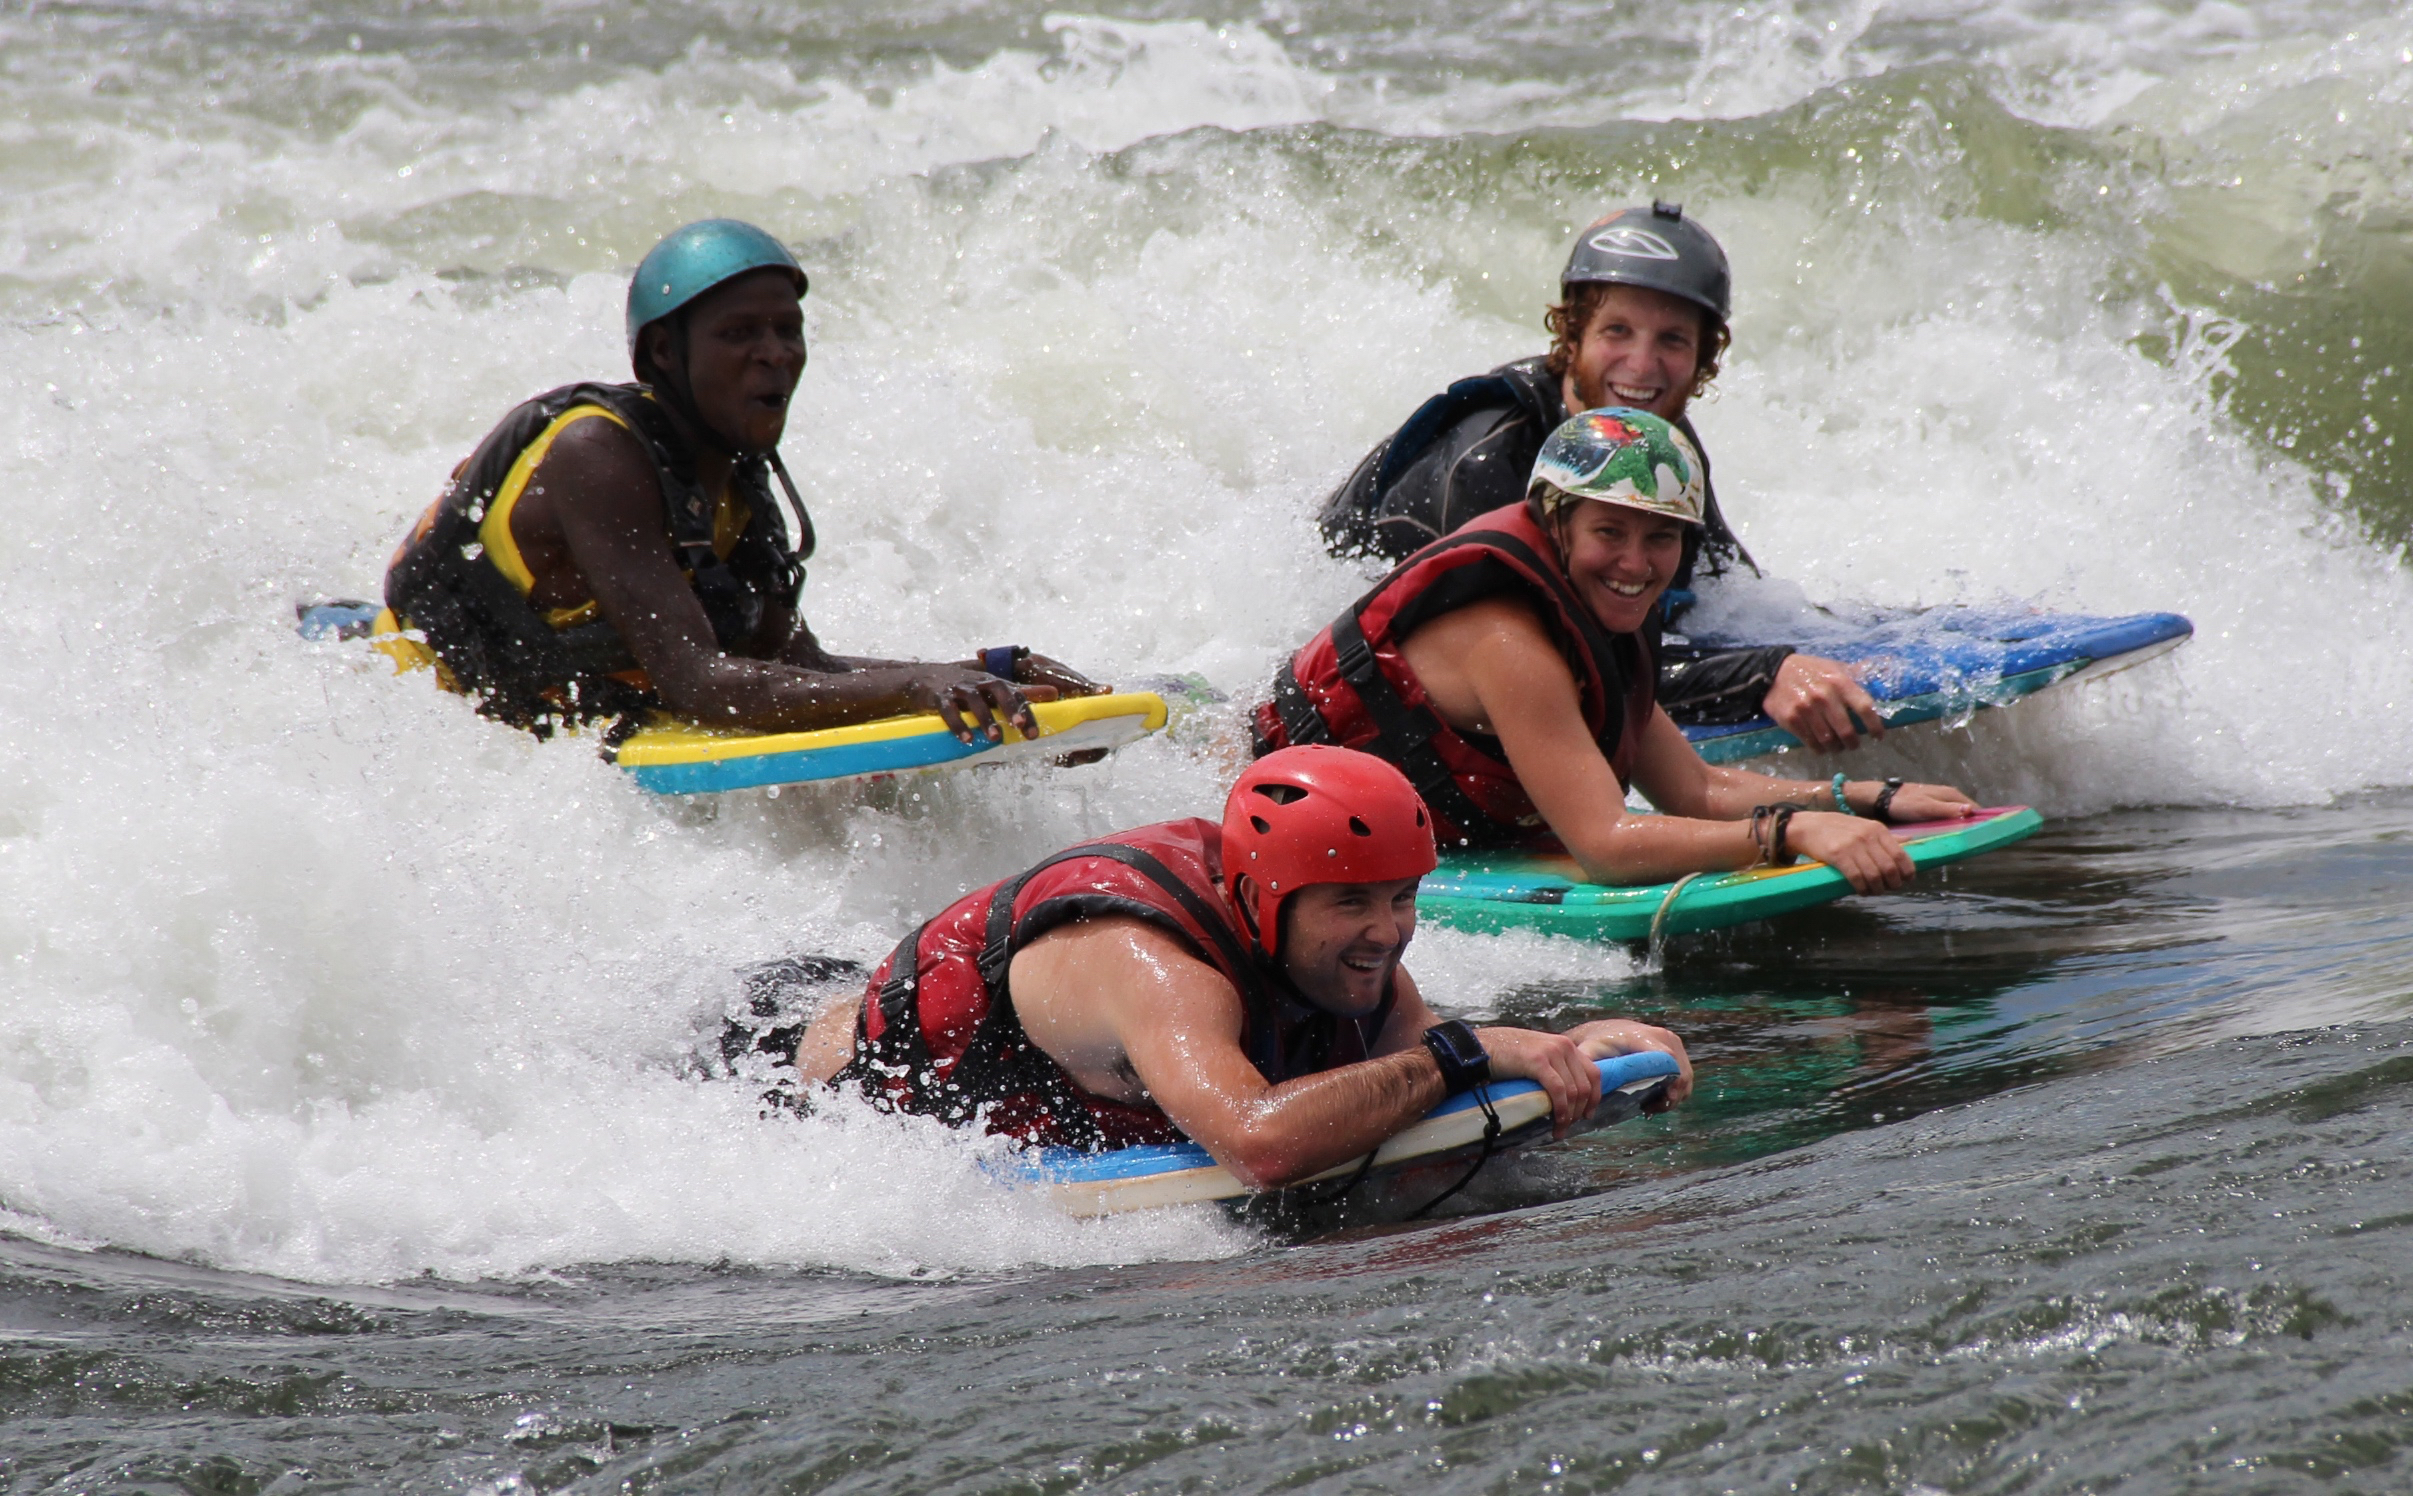 The waves look a lot bigger from down here... - Been rafting already? Want to see the river from a whole new perspective? Join us for an incredible day running the mighty rapids of the White Nile with nothing more than a pair of fins strapped to your feet and a bodyboard to hold onto!!